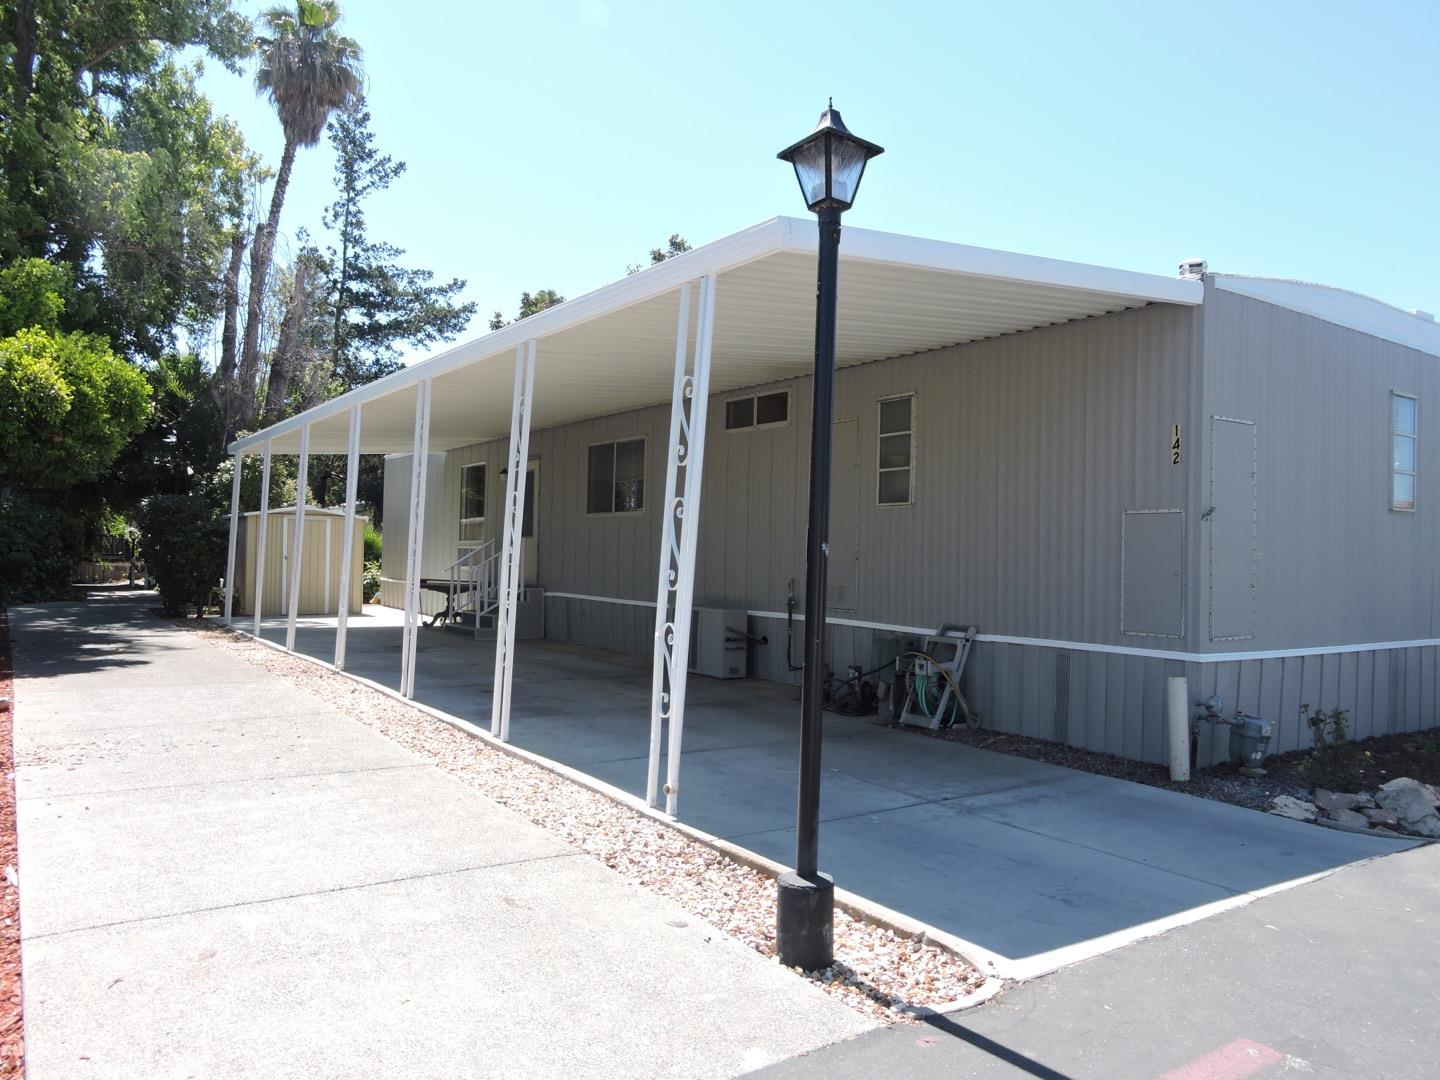 Additional photo for property listing at 3637 Snell Avenue  San Jose, Kalifornien 95136 Vereinigte Staaten